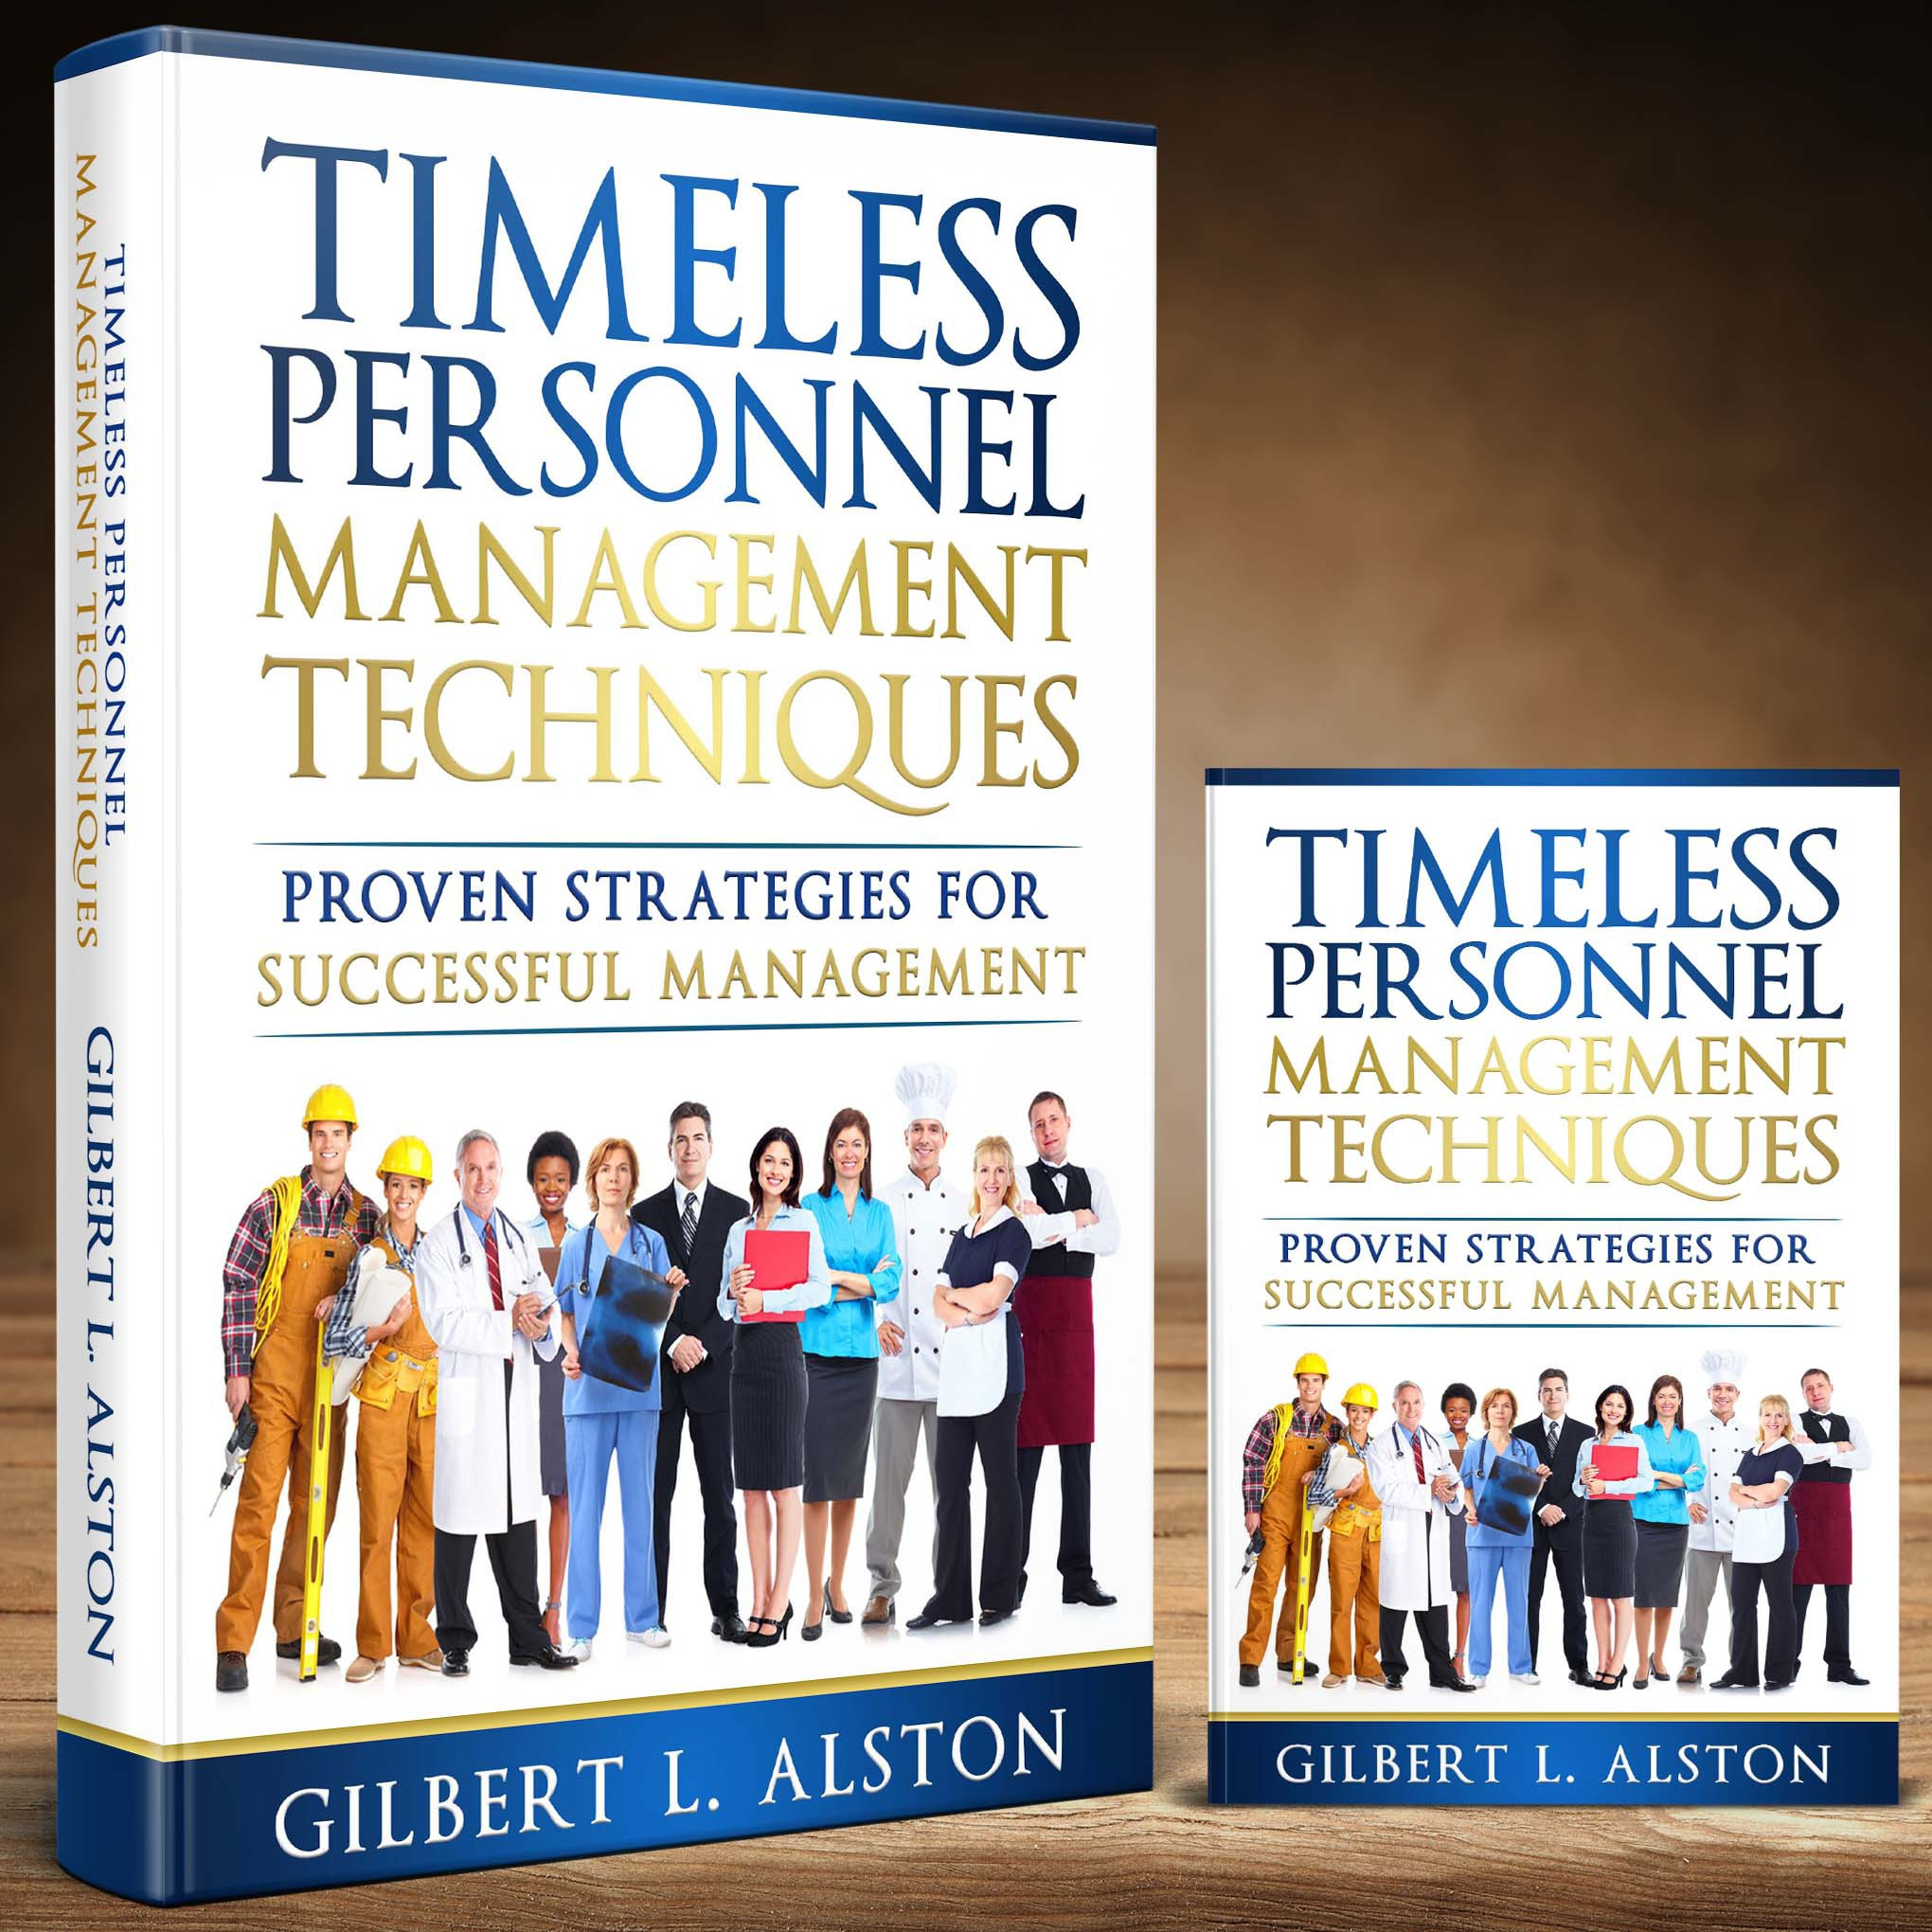 Design a creative and powerful book cover for a book about personnel management.